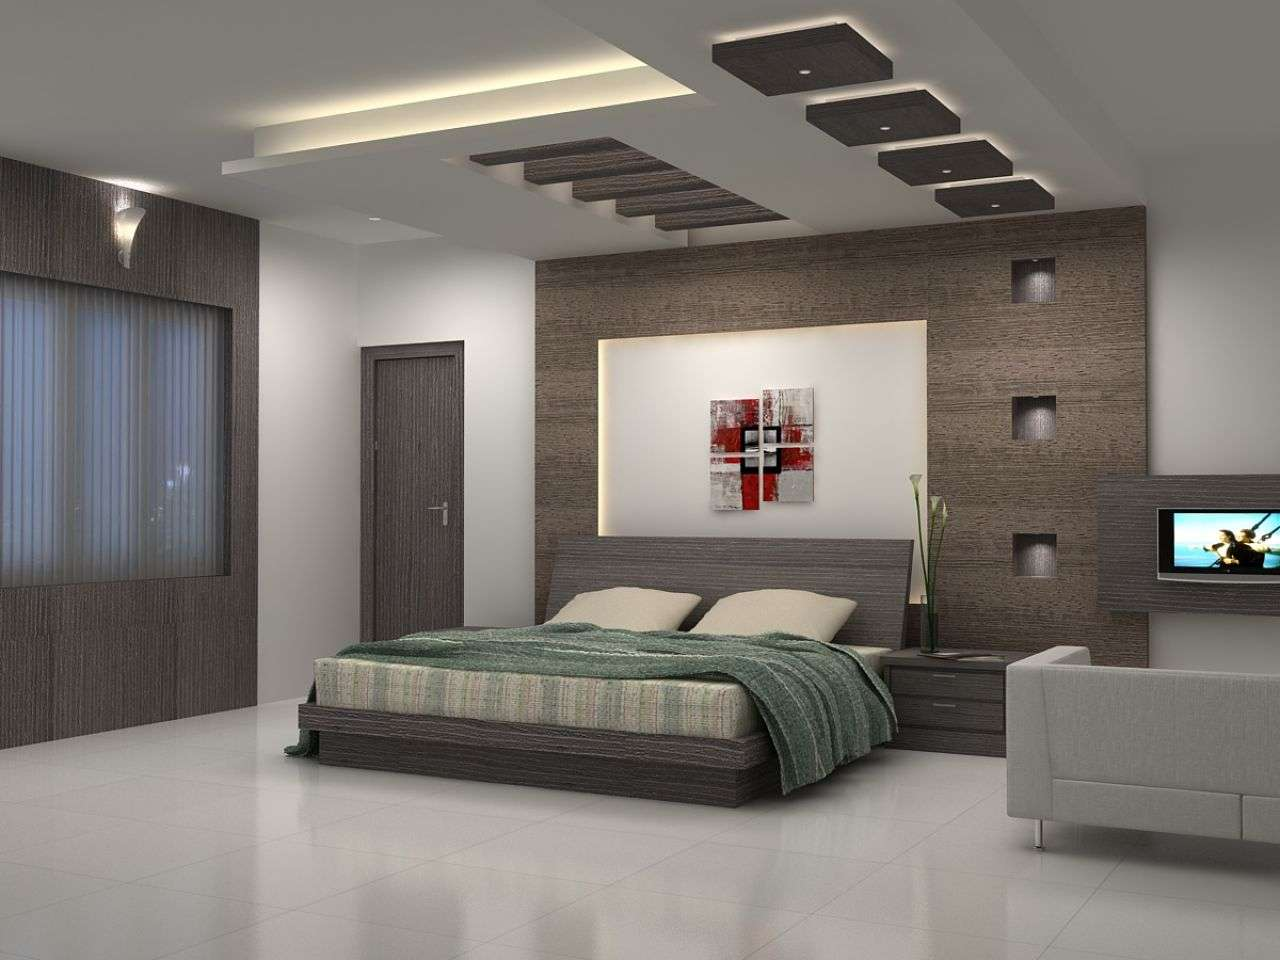 Fancy Bedroom Ceiling Design Remodel Home Designing Inspiration